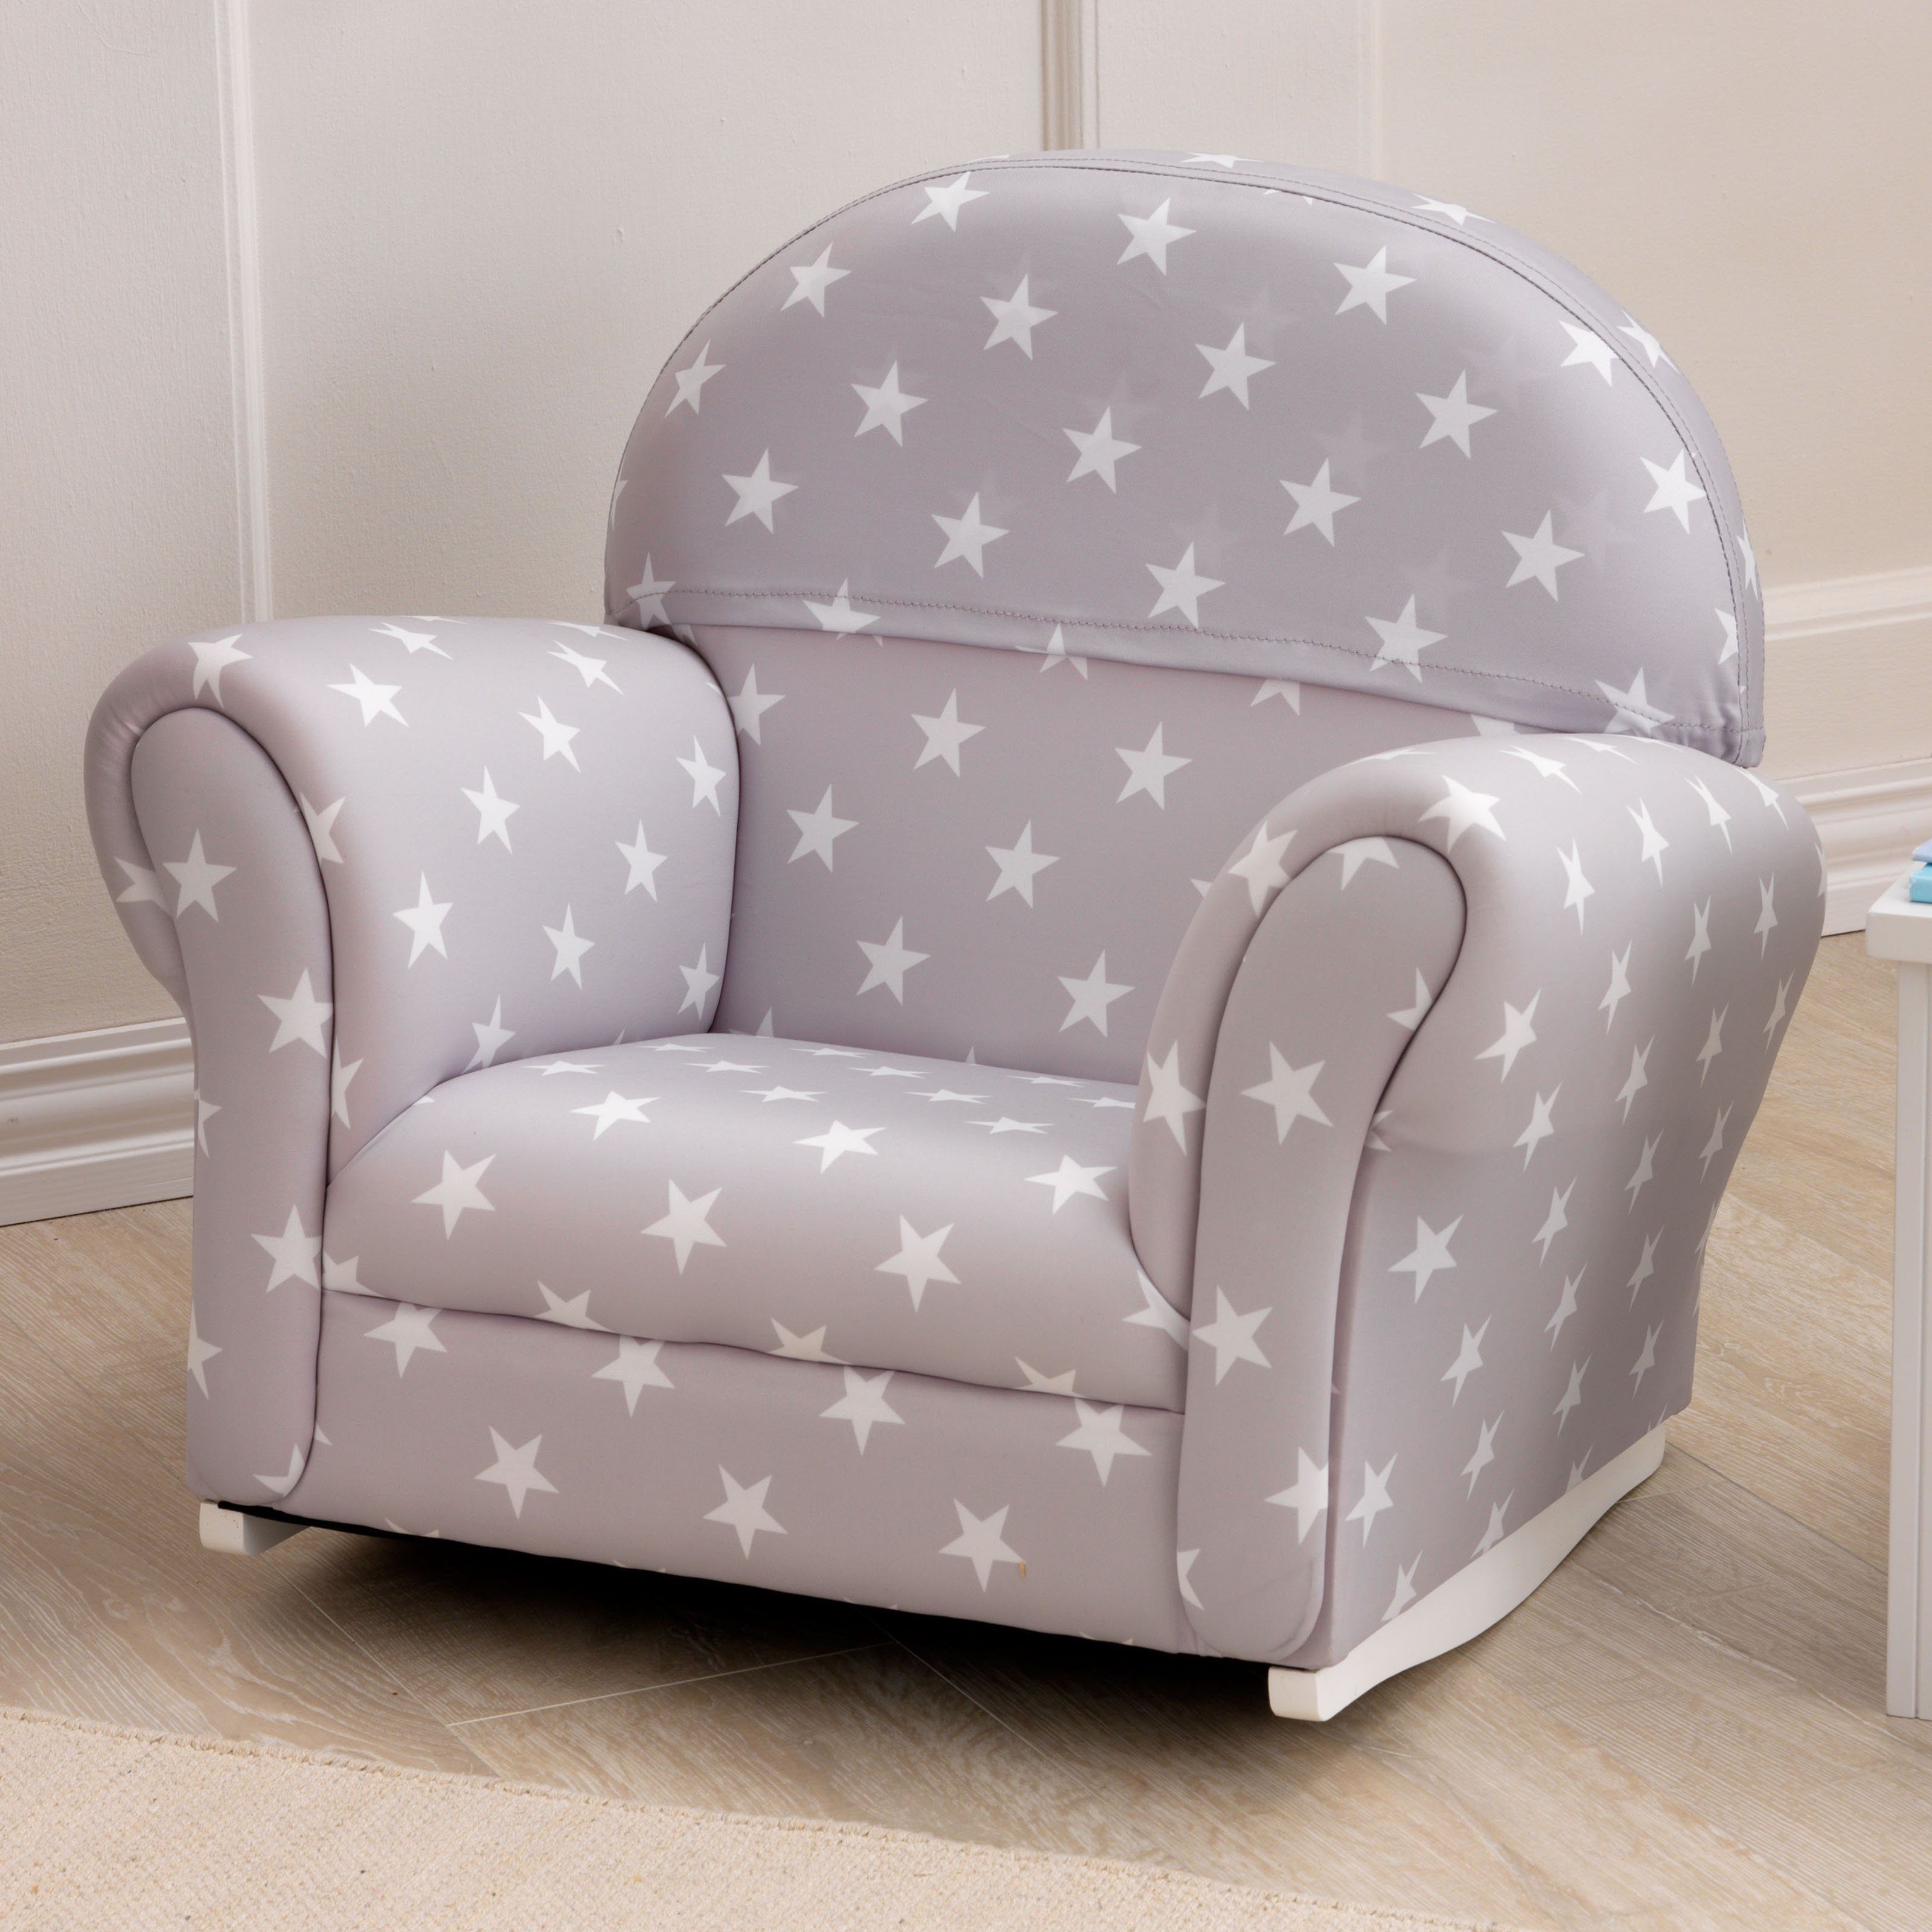 New toddler Club Chair rtty1